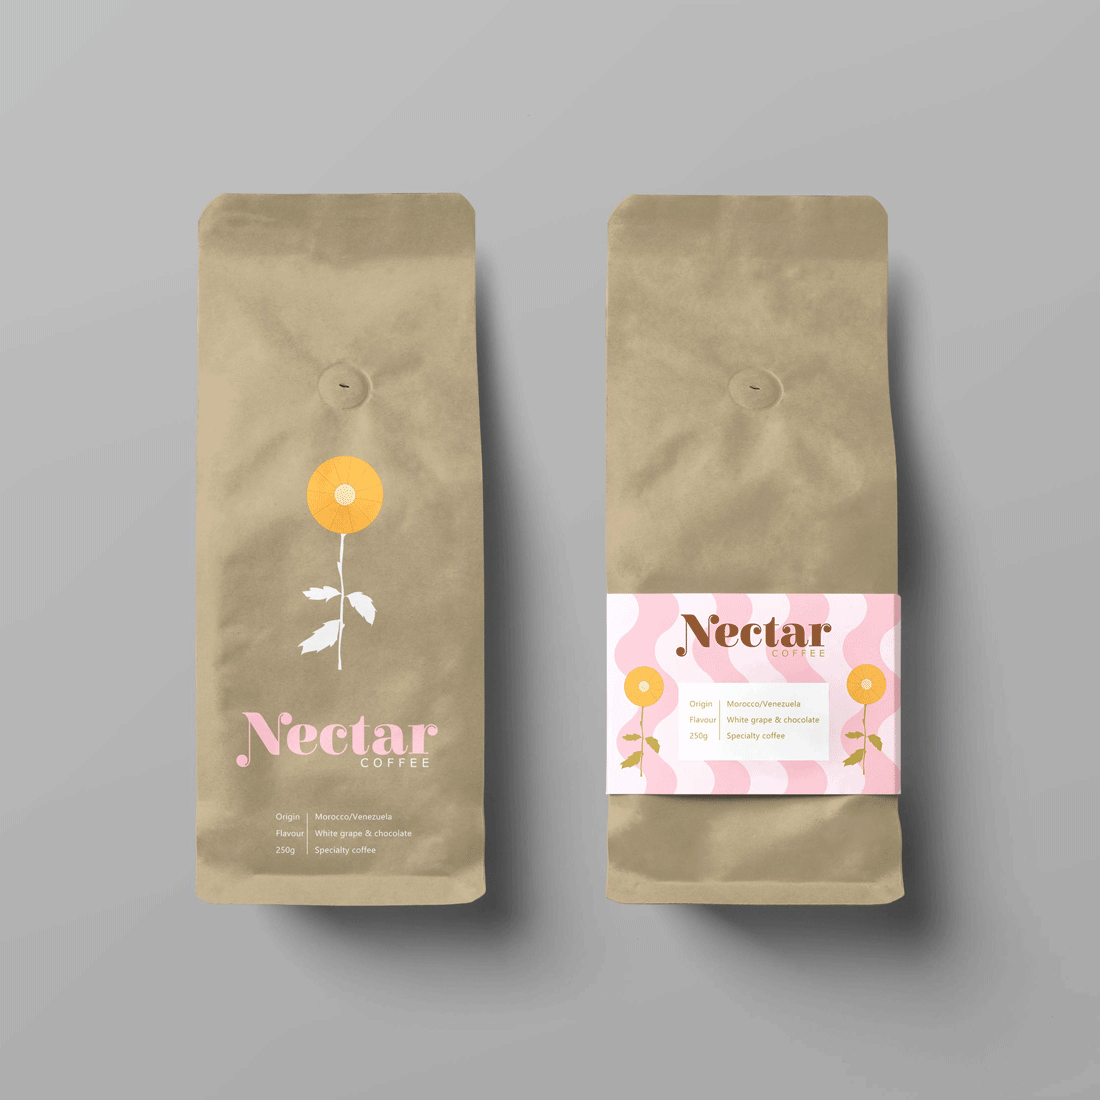 Paige-Digital-branding-Nectar-Coffee-Bags